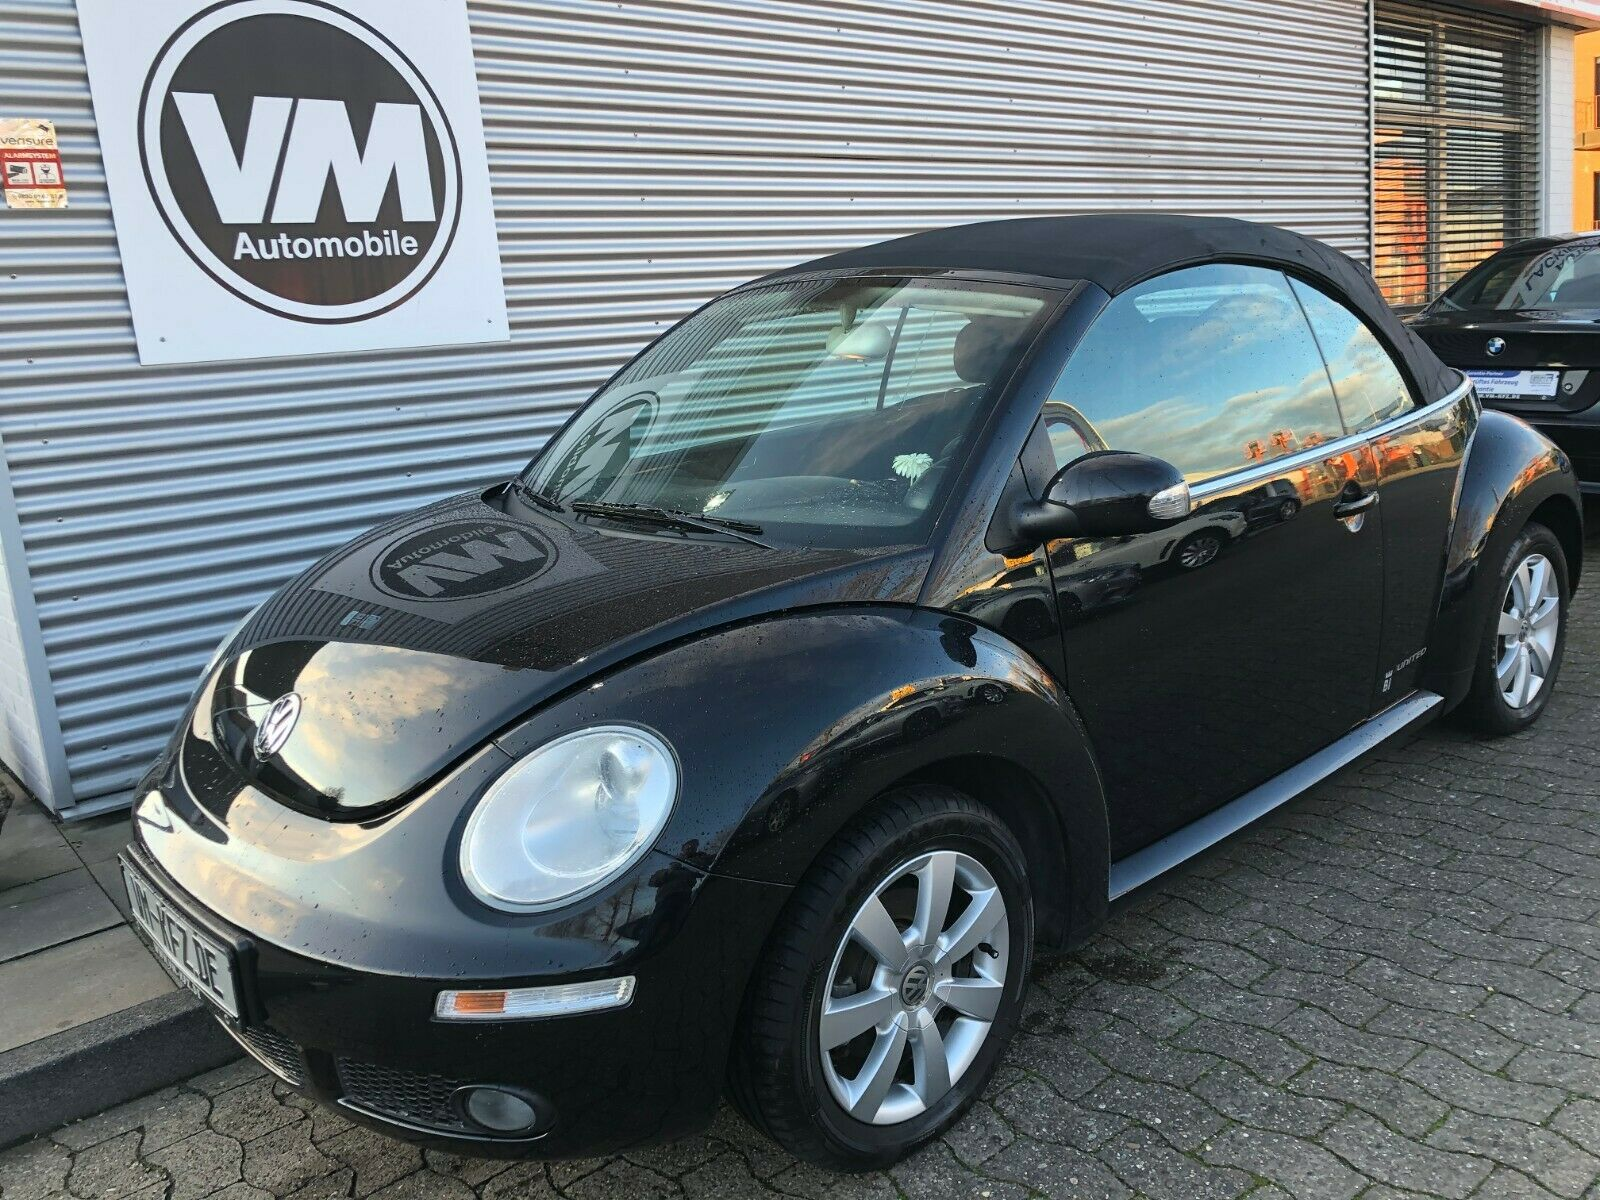 VW Beetle Cabriolet 1.6 United Klima Sitzh.Alu R-CD